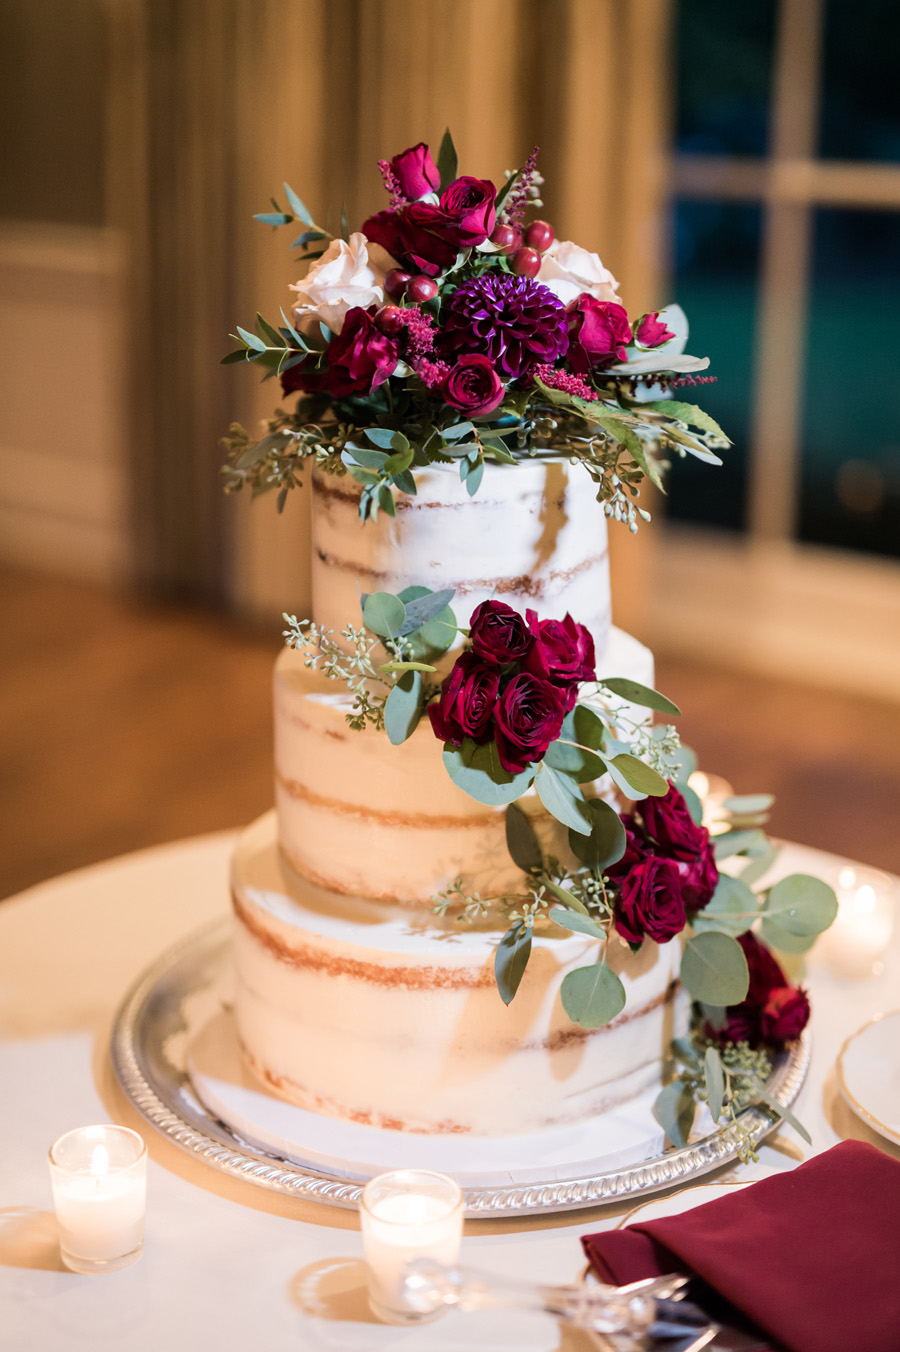 Detail photo of wedding cake.